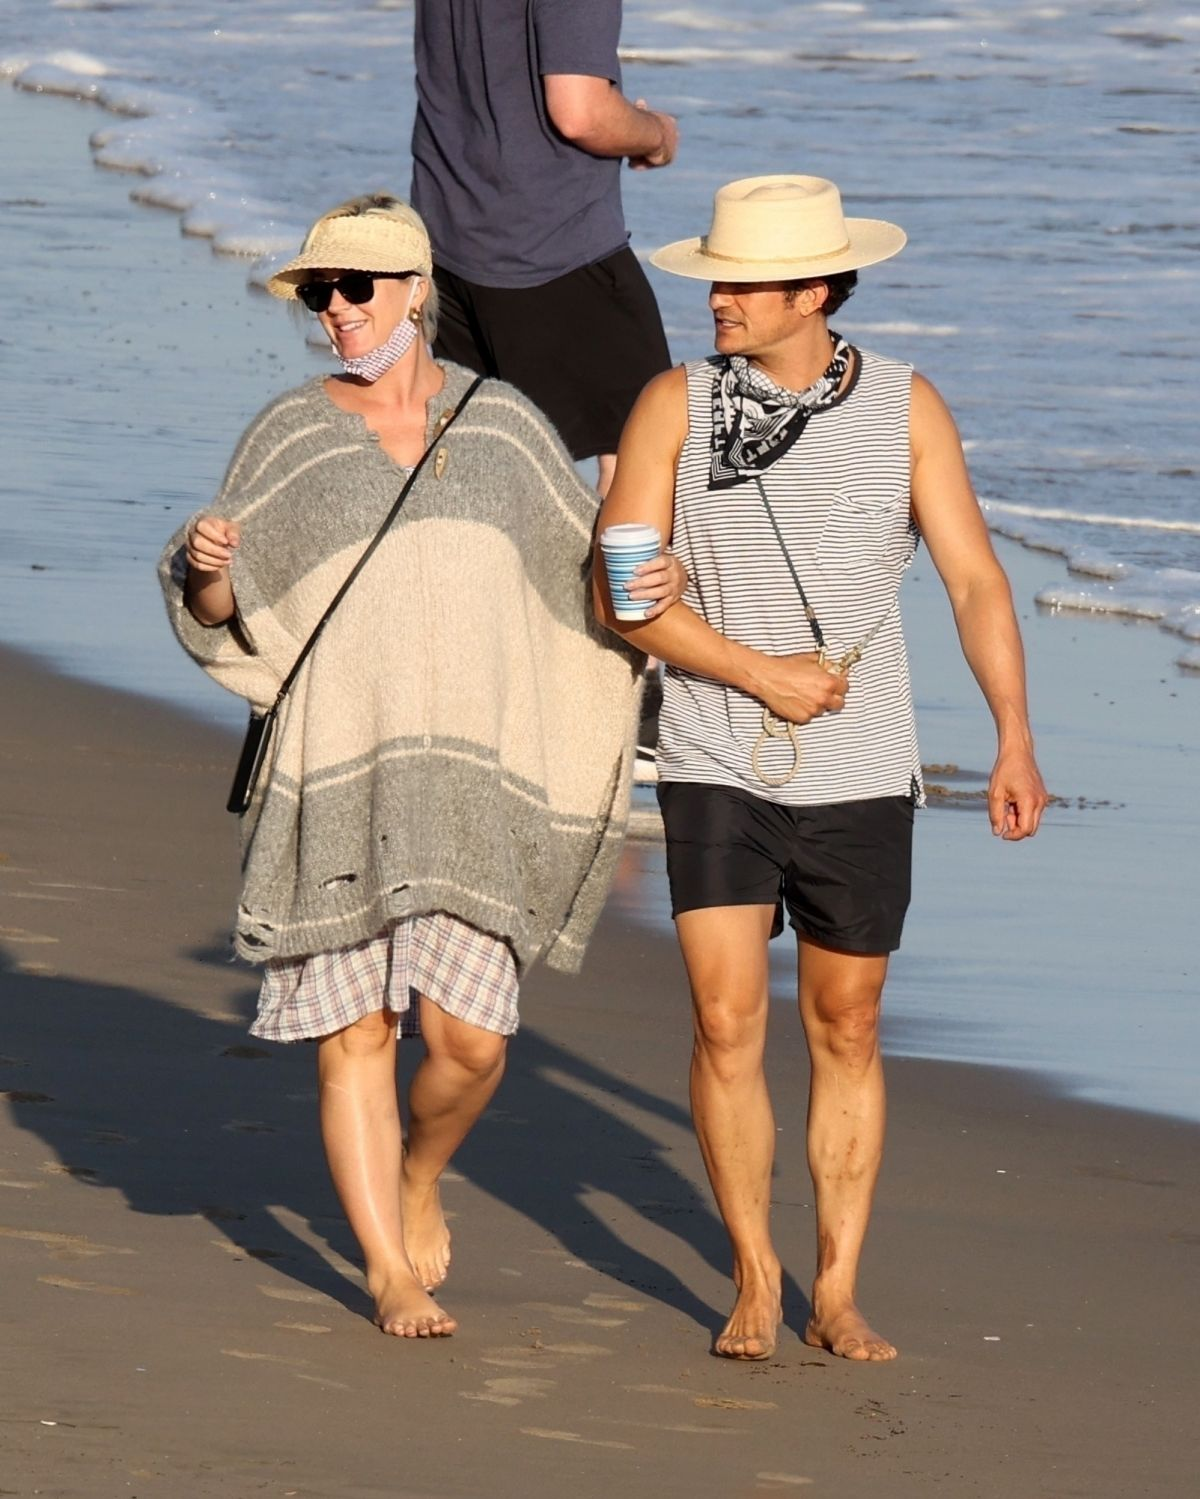 Katy Perry & Orlando Bloom Soak up the sun on a beach in